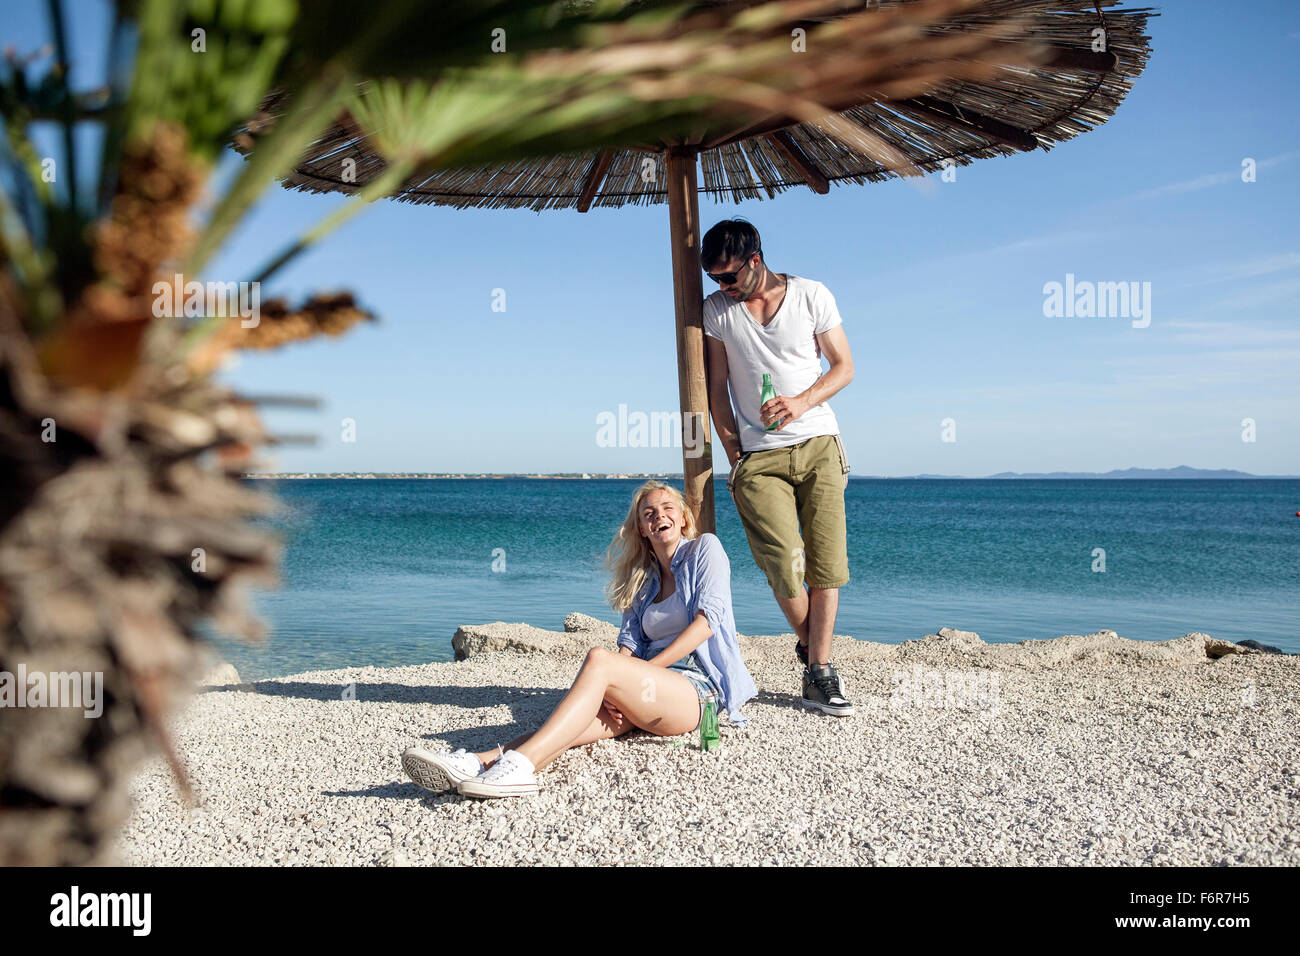 Young man pouring water on girlfriend on beach - Stock Image